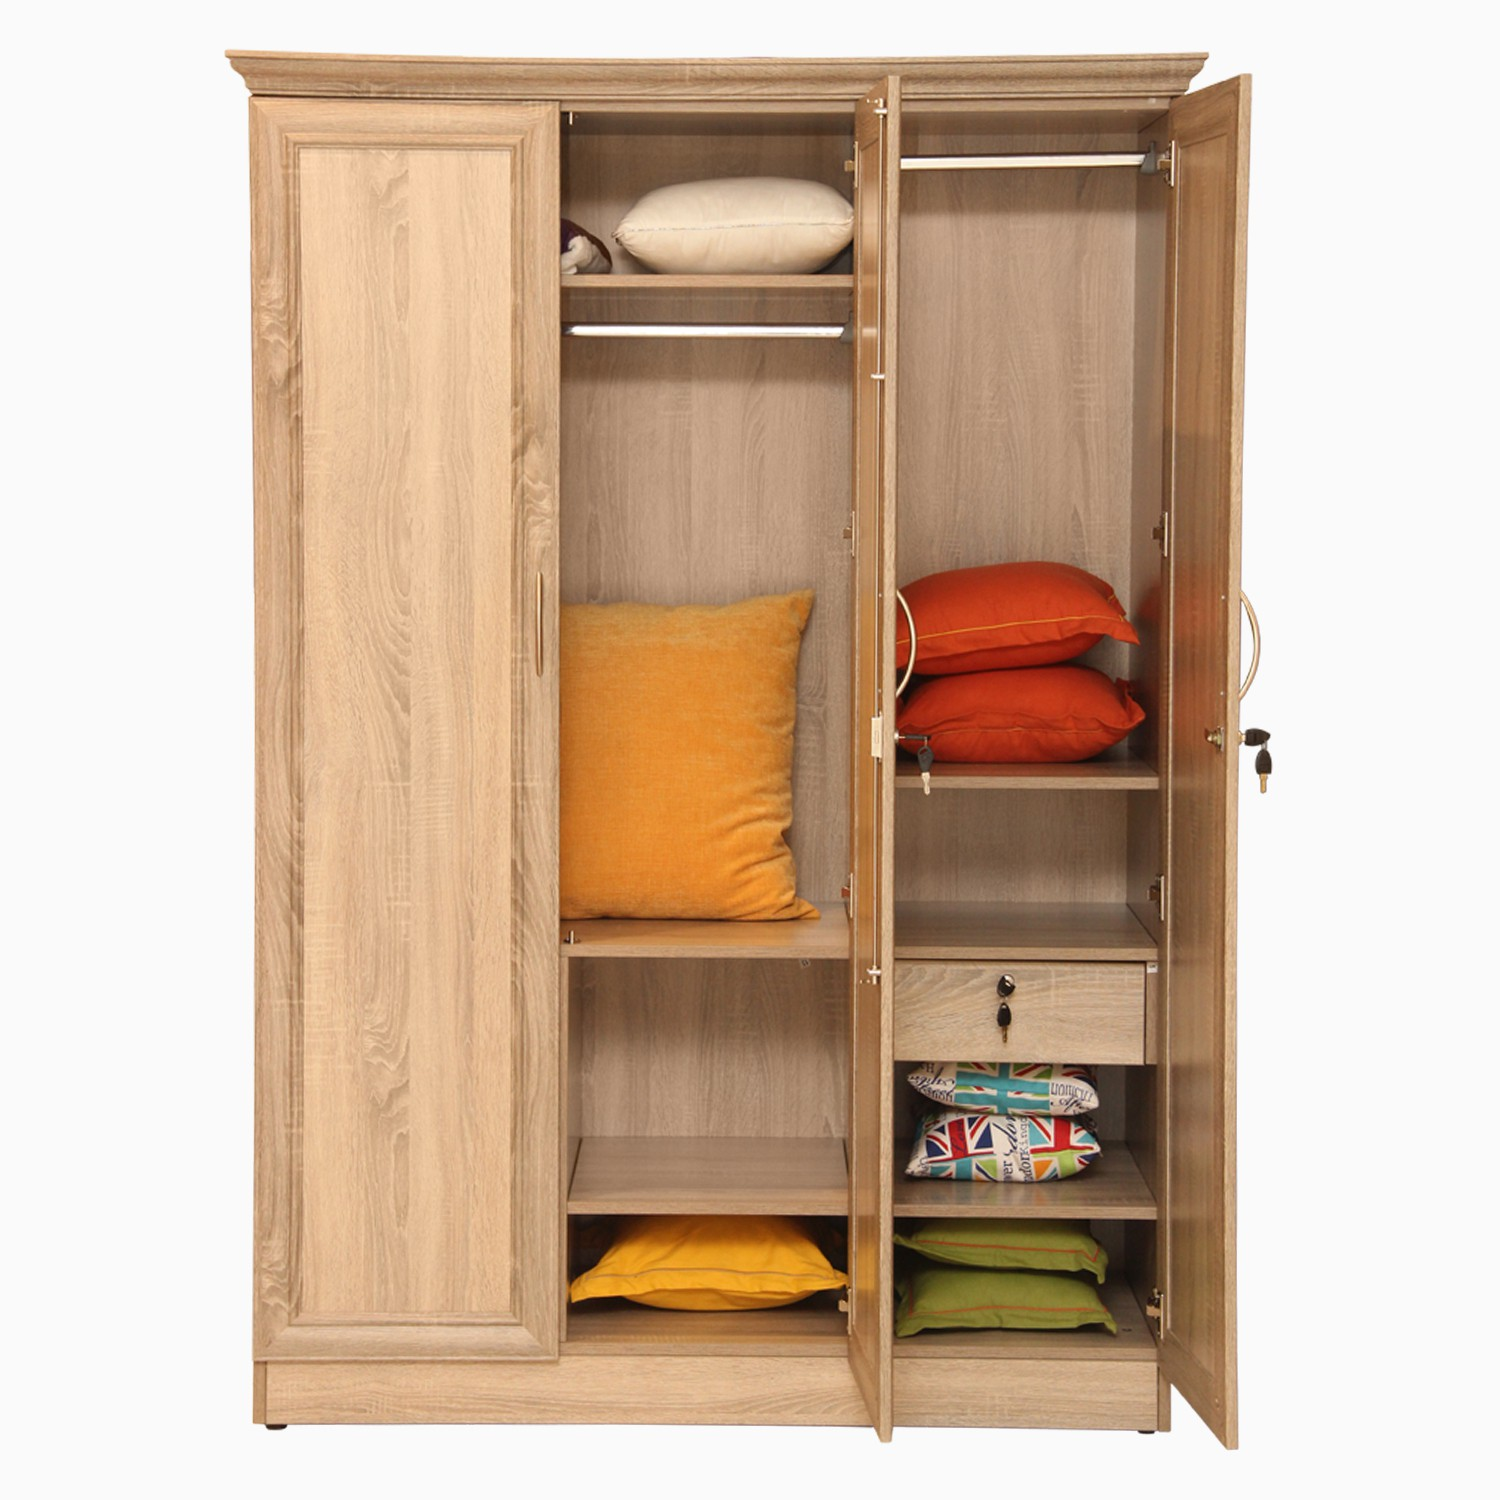 Storage units price list in india 16 06 2017 buy storage units online Godrej interio home furniture price list